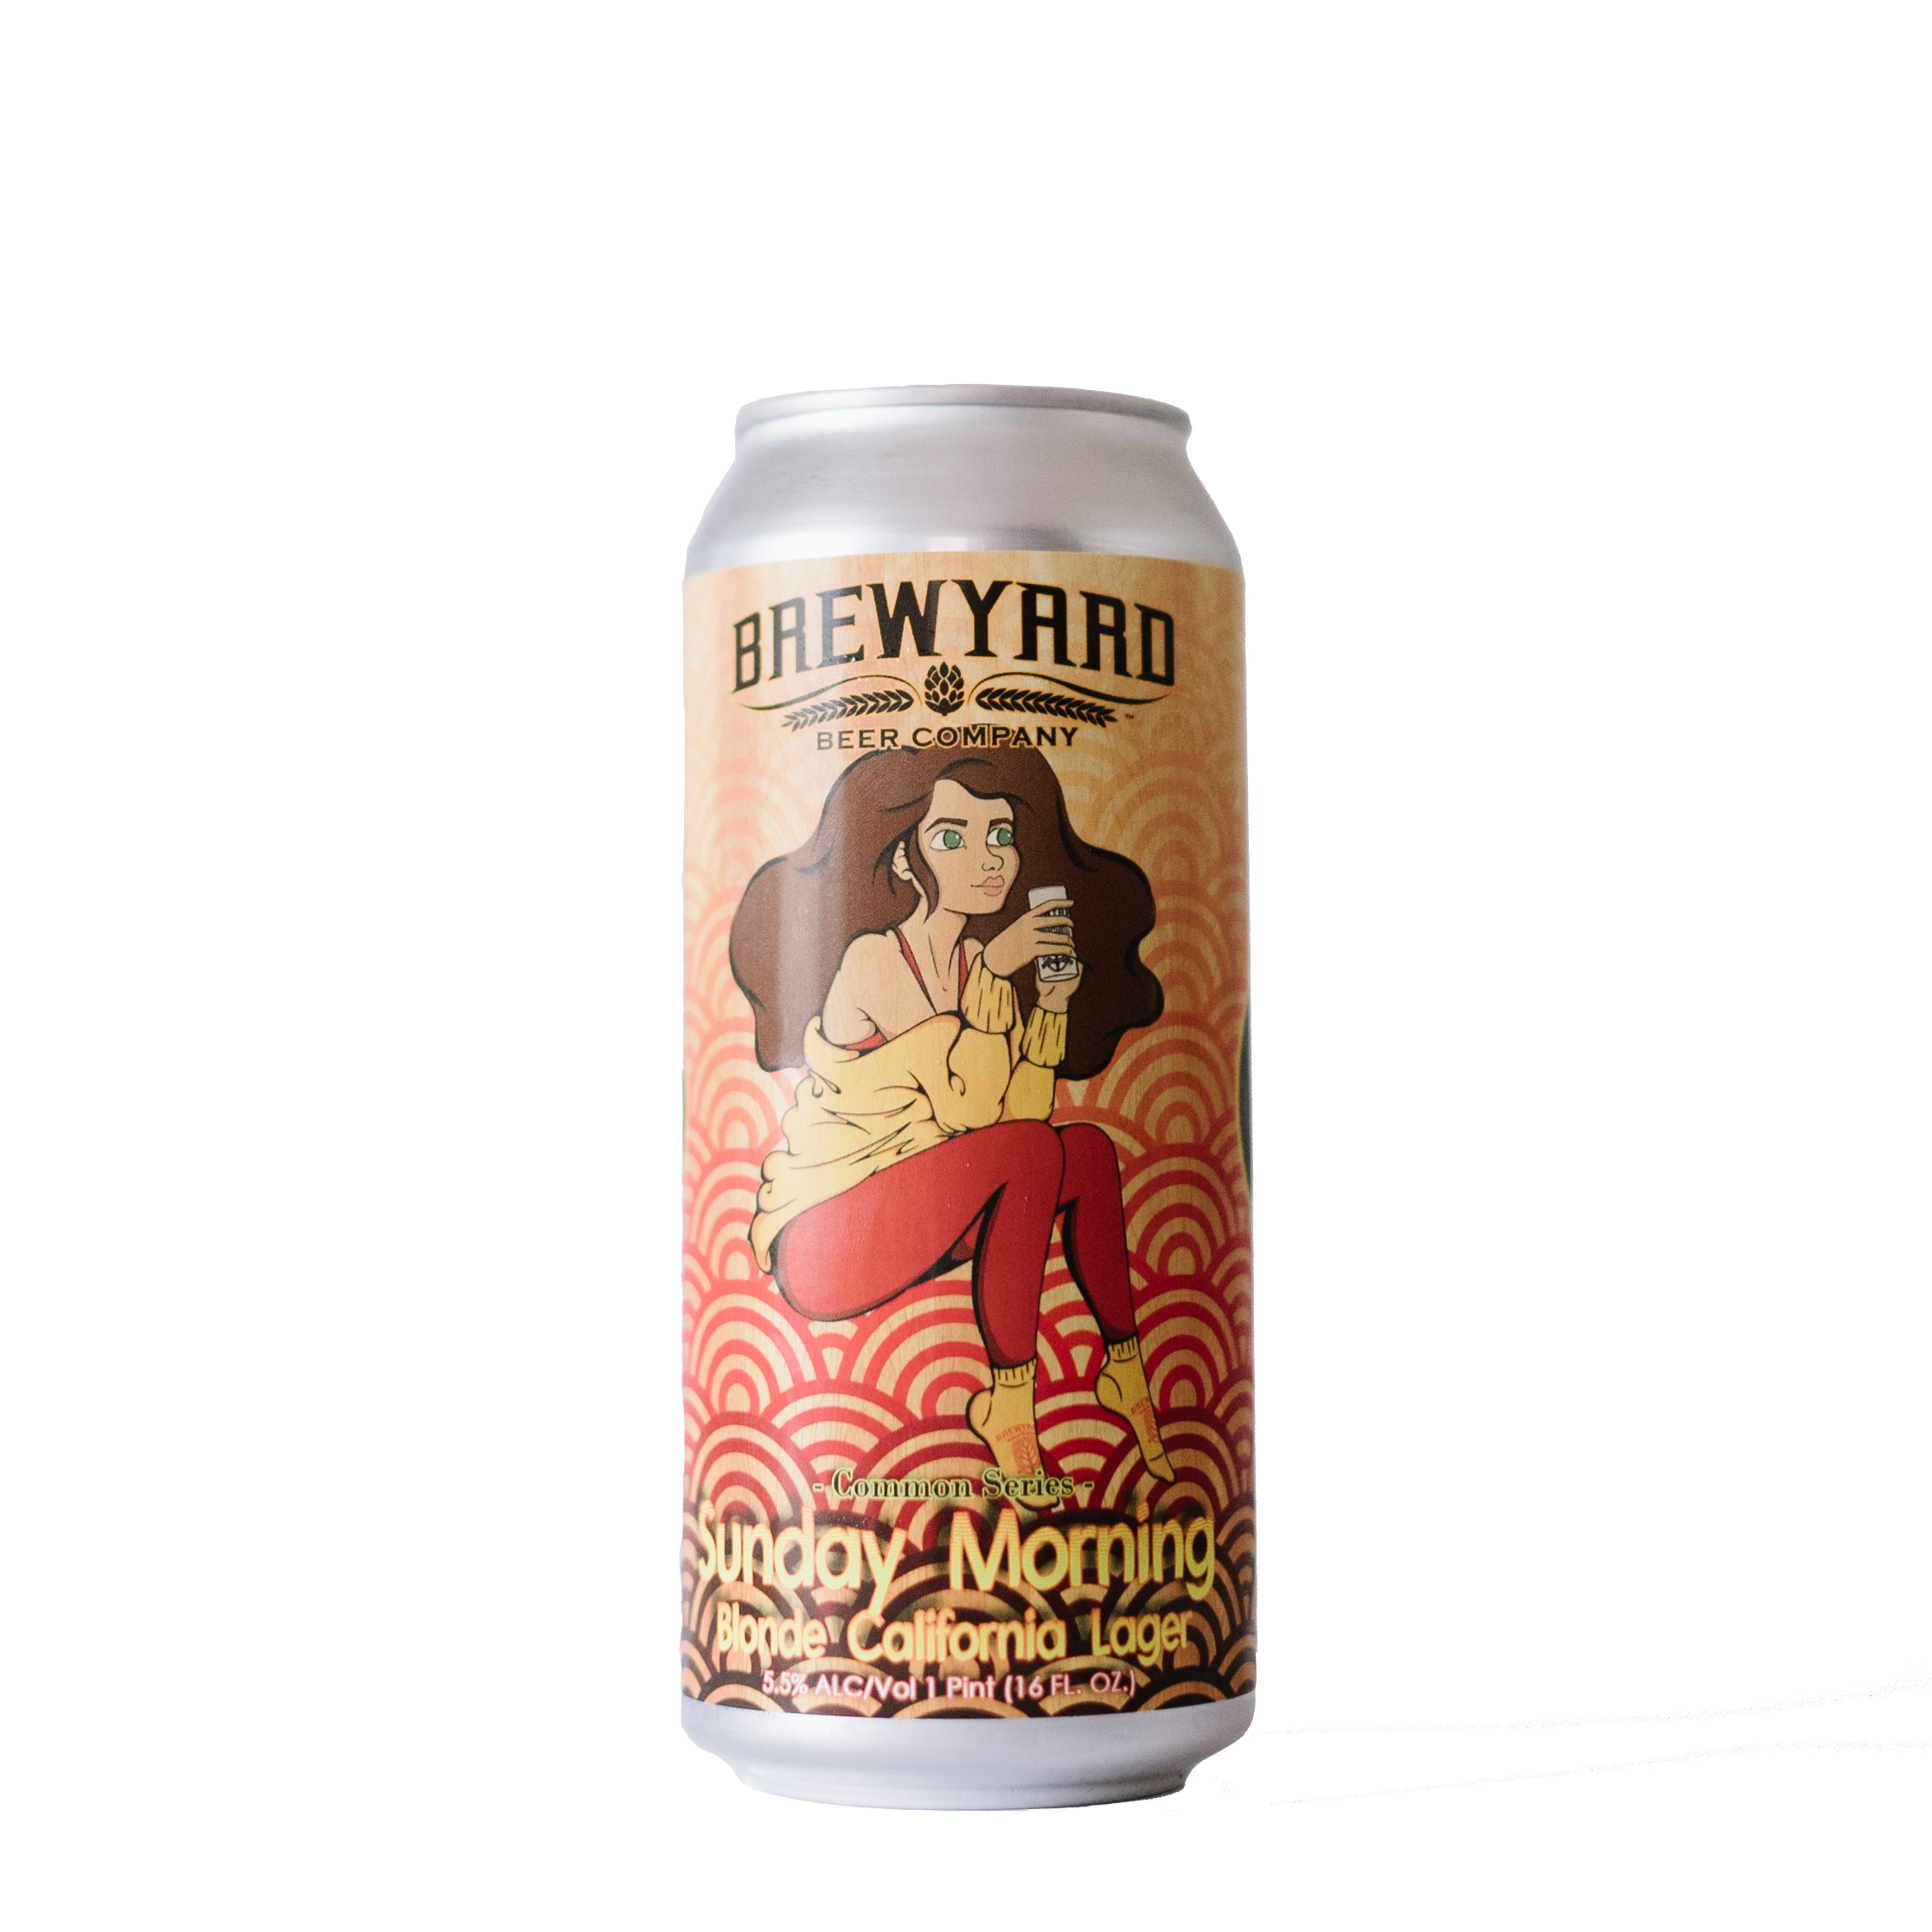 Brewyard Beer Company       Sunday Morning, Blonde California Lager    The perfect addition to Sunday morning brunch, the Sunday Morning Blonde Common Lager is light yet drinkable. As easy to get along with as those besties at Brewyard.